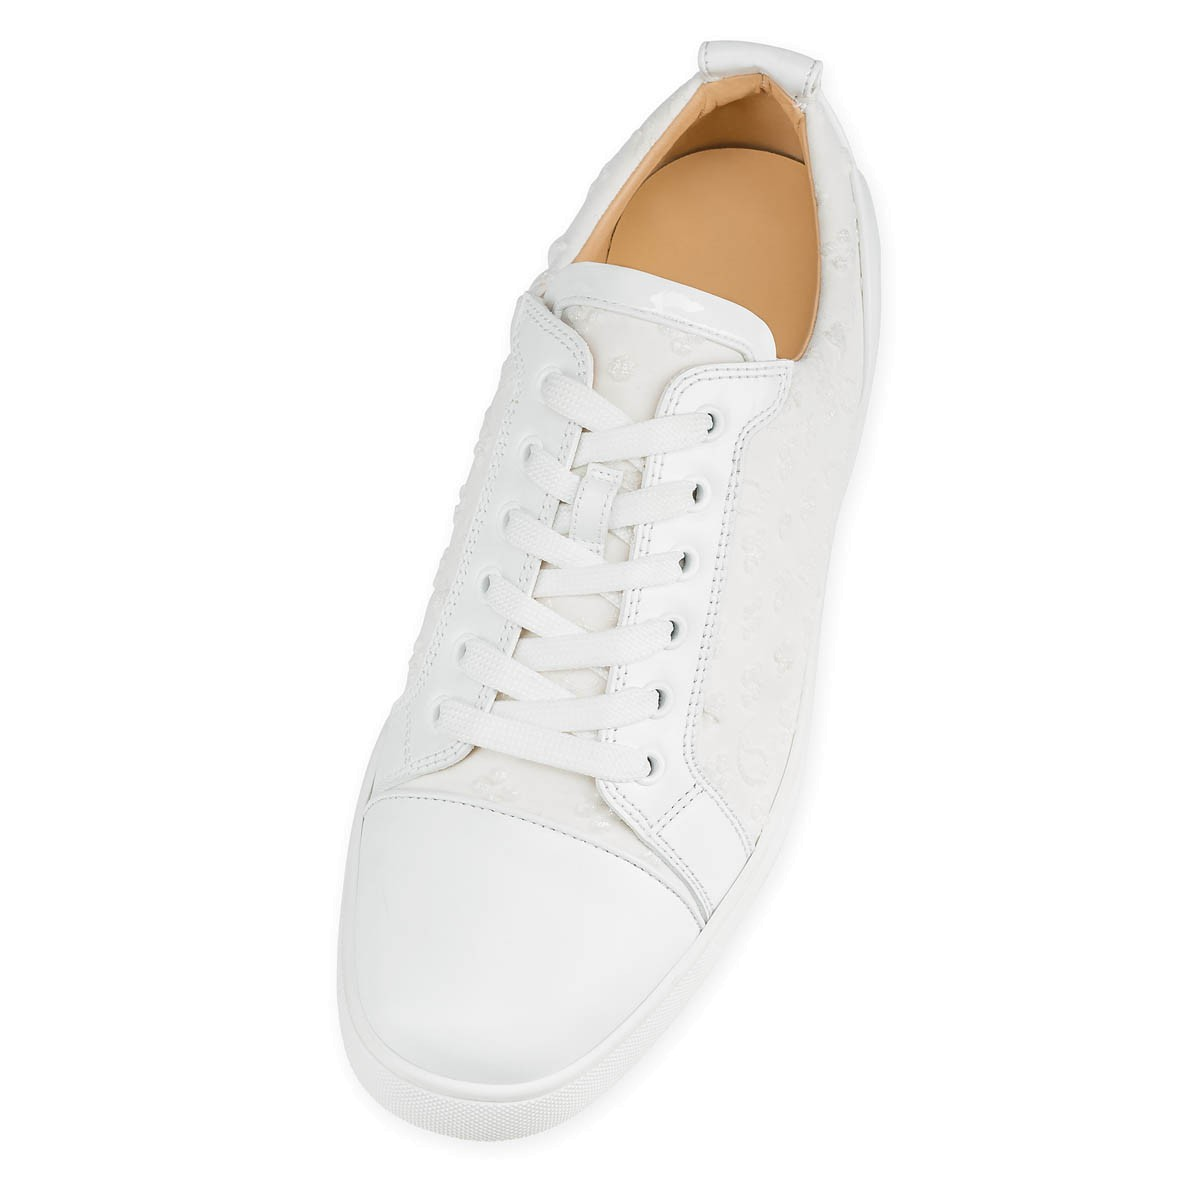 b65f159ce4d Louis Junior Men's Flat - メンズシューズ -